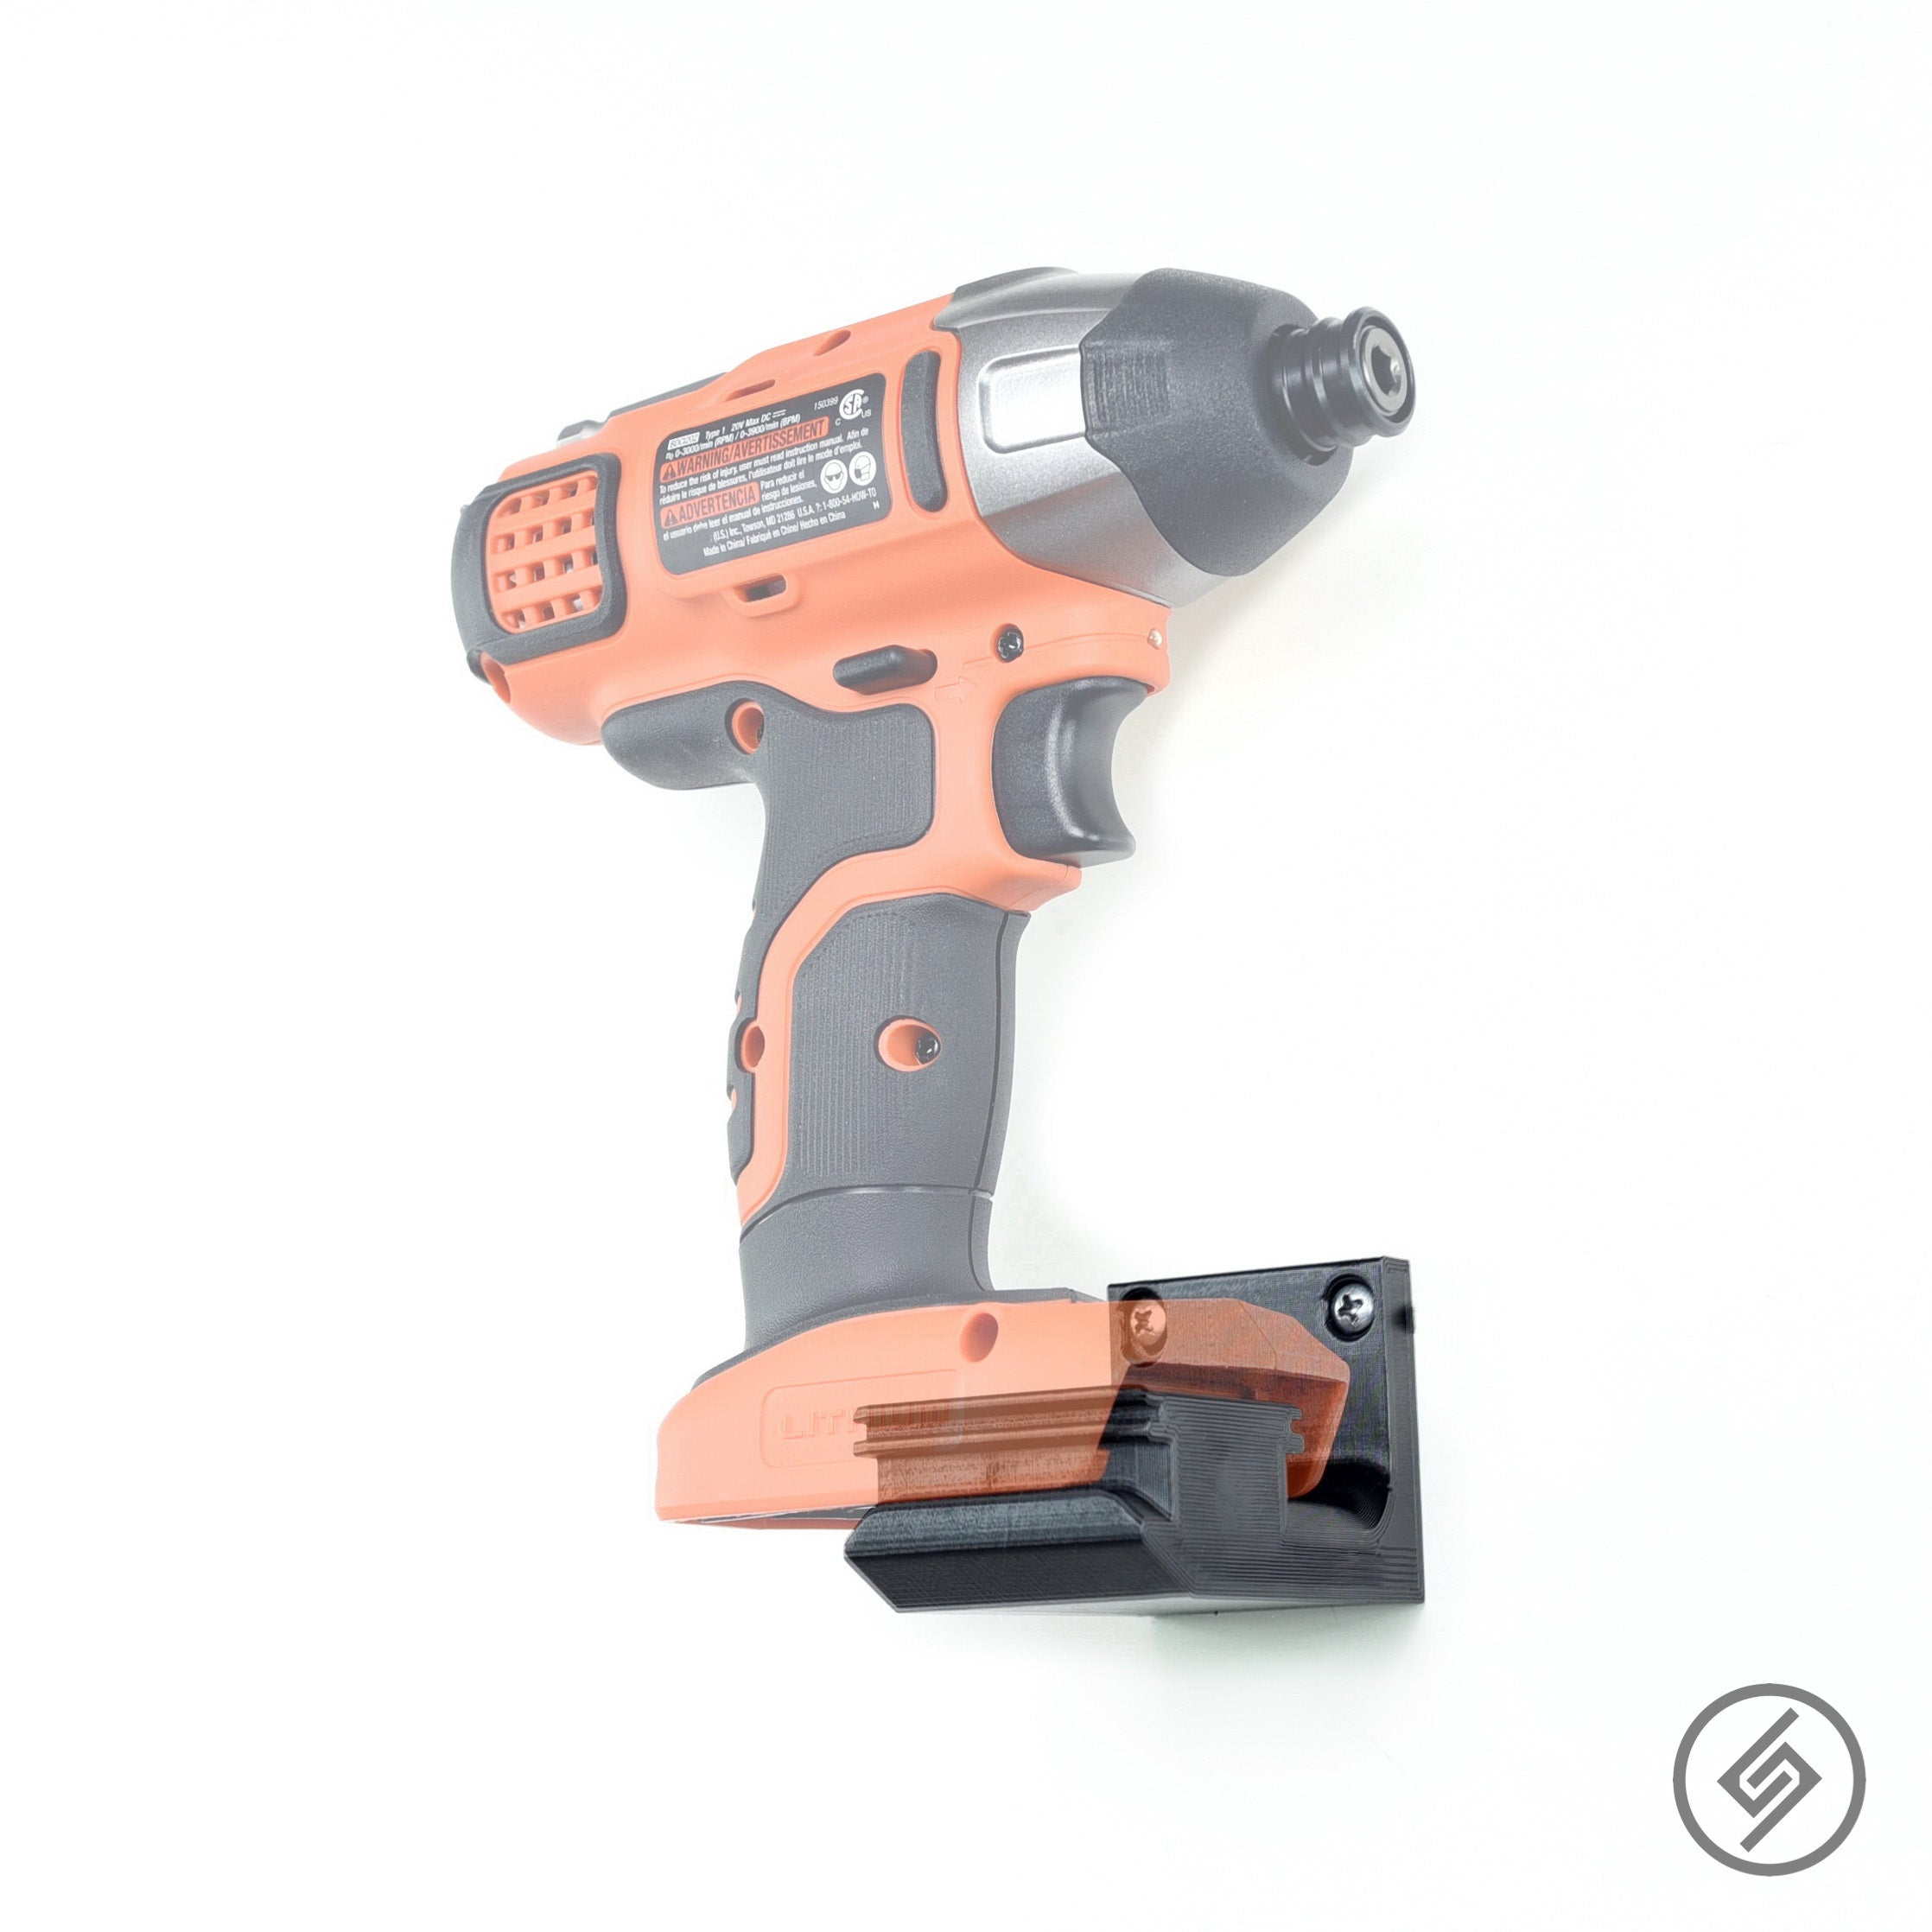 Black & Decker 20v Power Tool Wall Display Mount Holder Garage Workshop Storage Spartan Mount